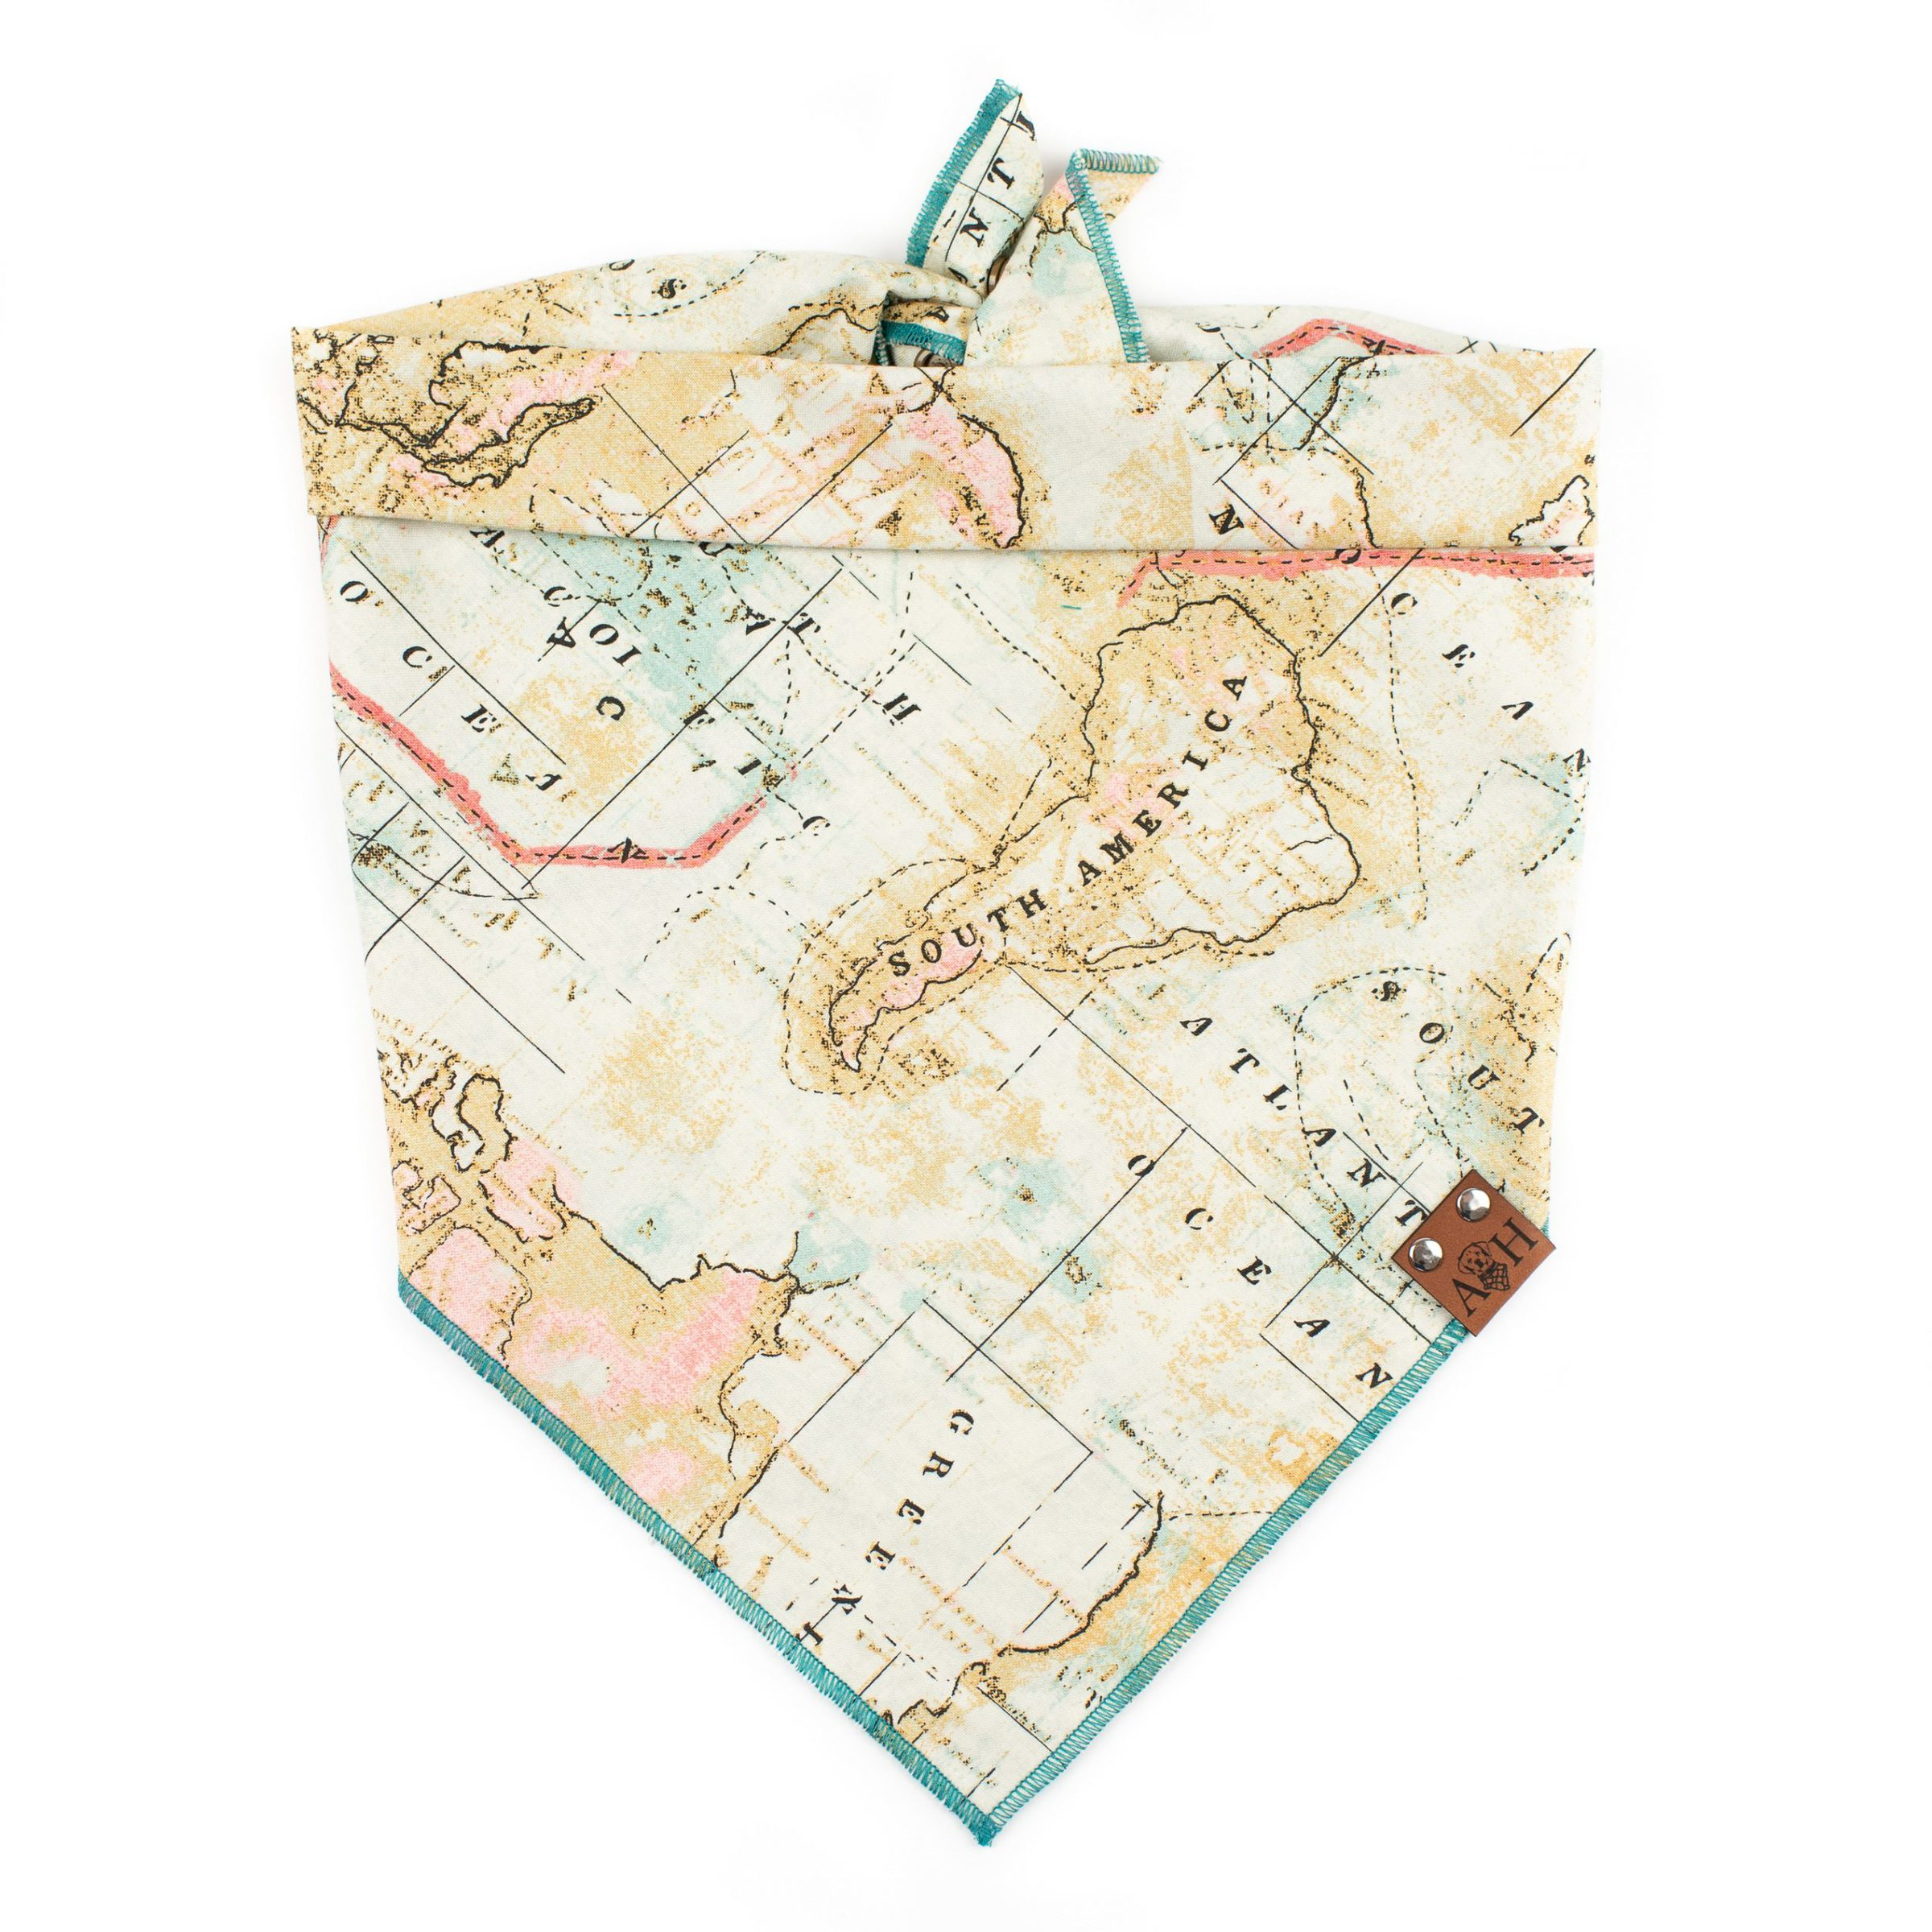 Tan, teal and pink map wanderlust dog bandana